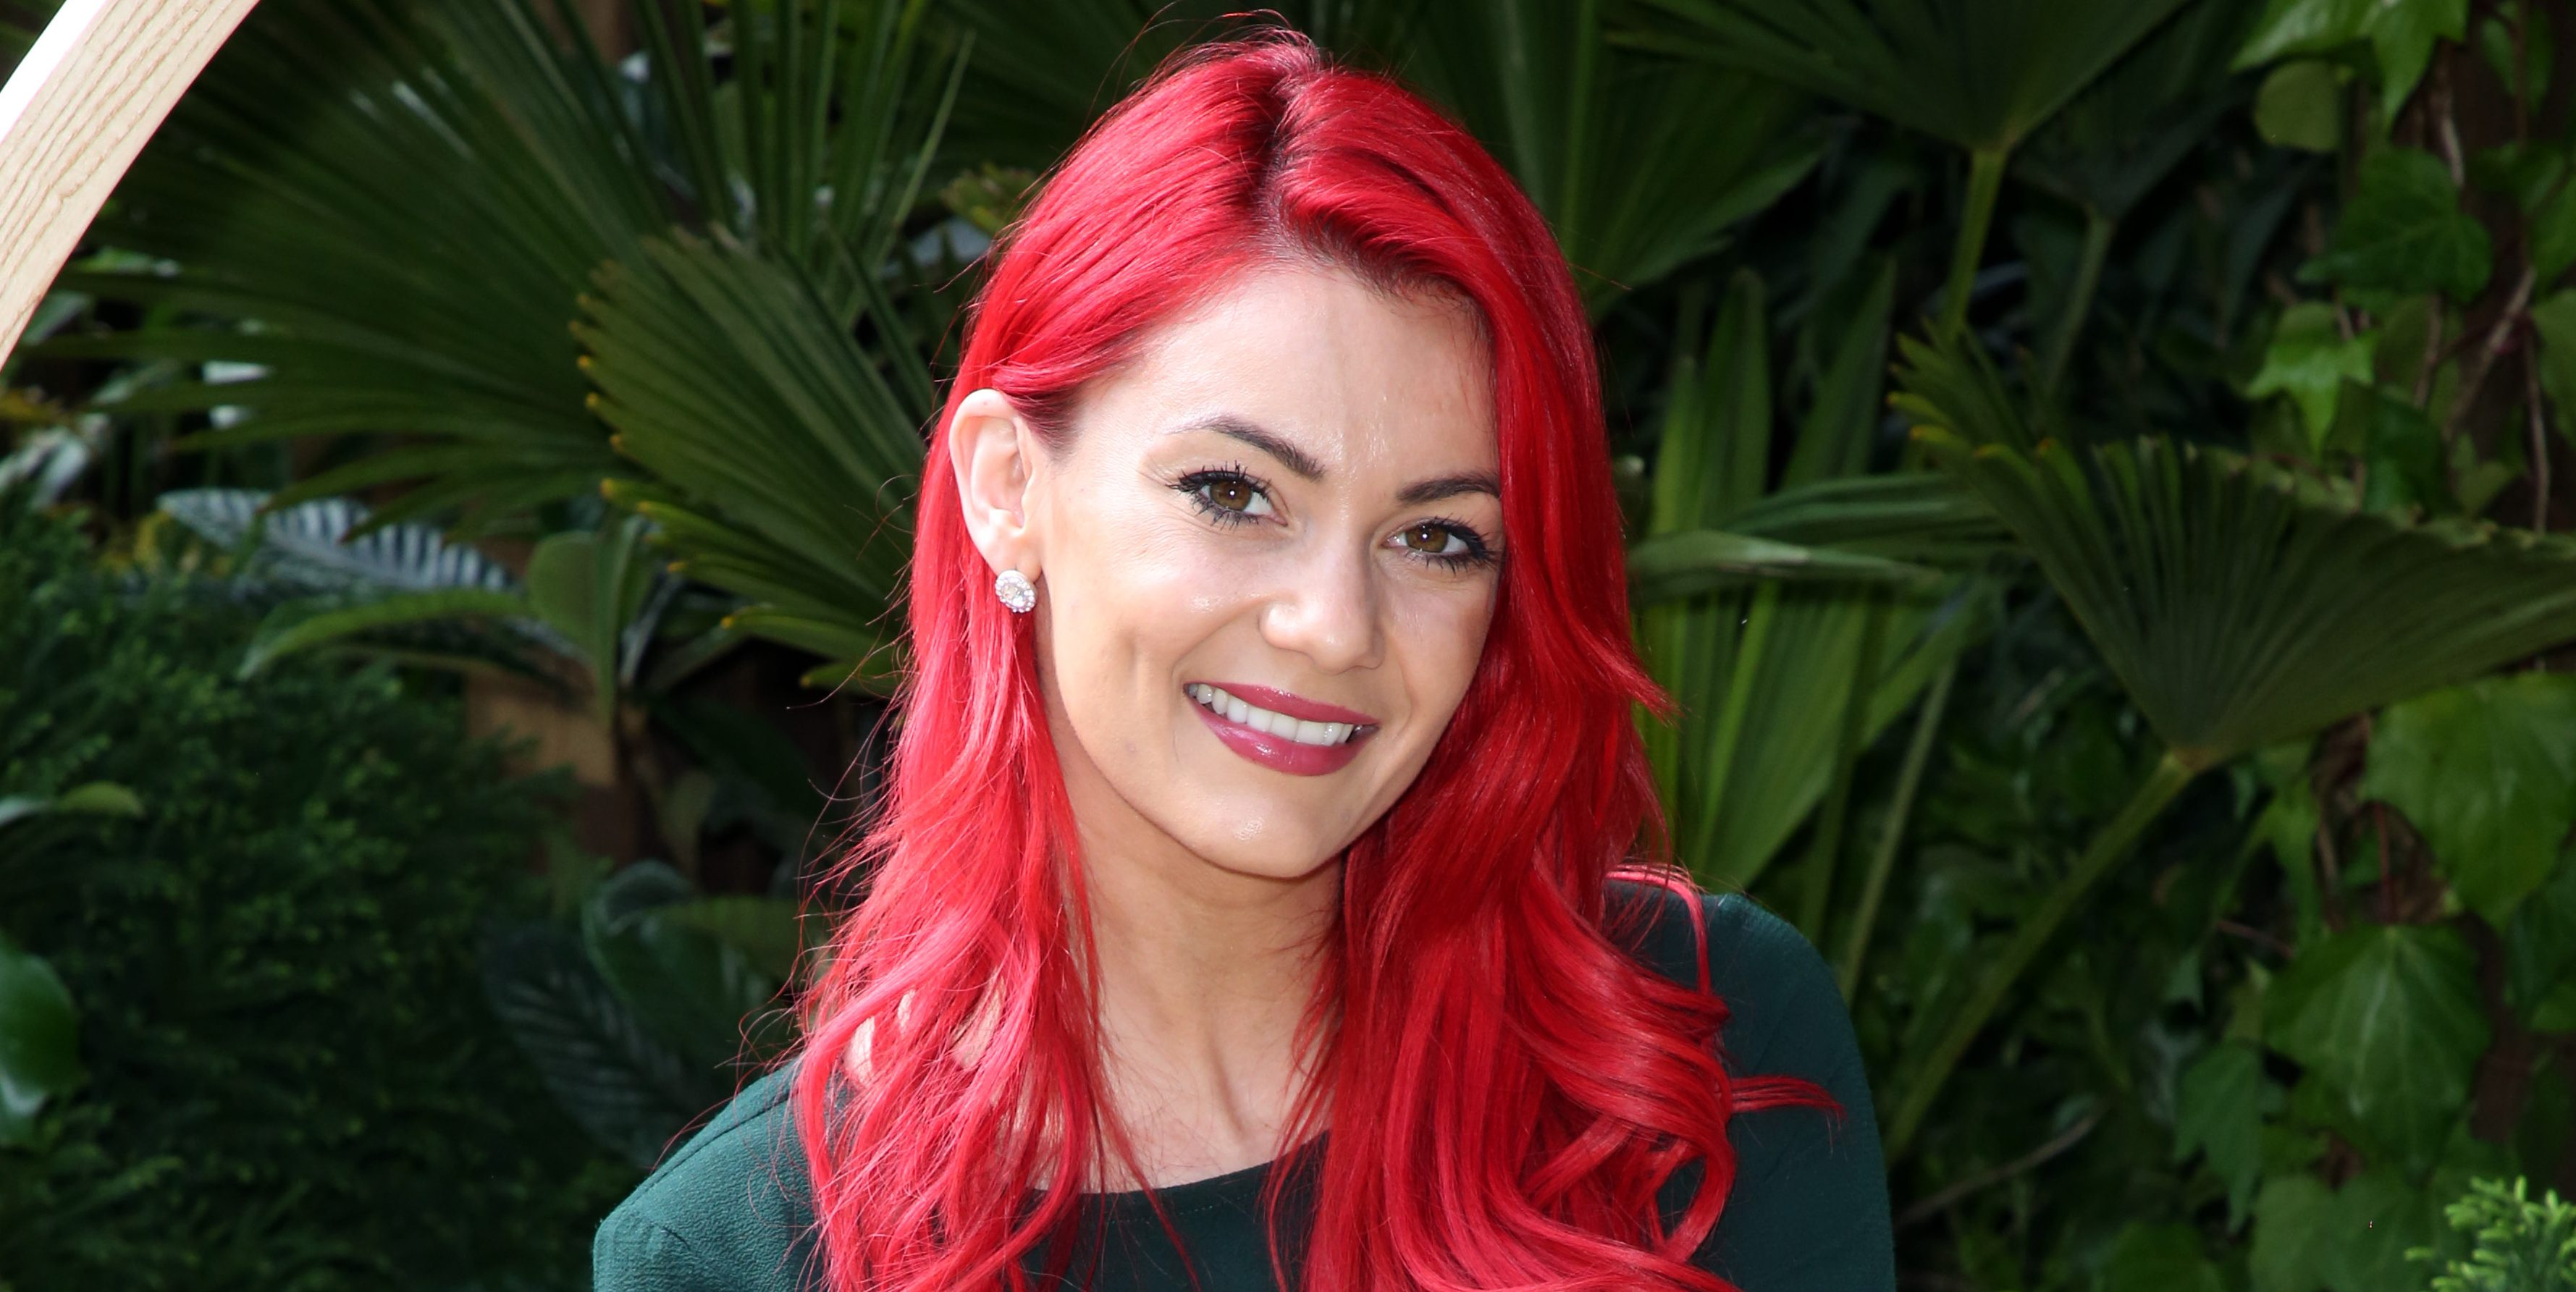 Strictly Come Dancing: Dianne Buswell teases identity of new celebrity partner